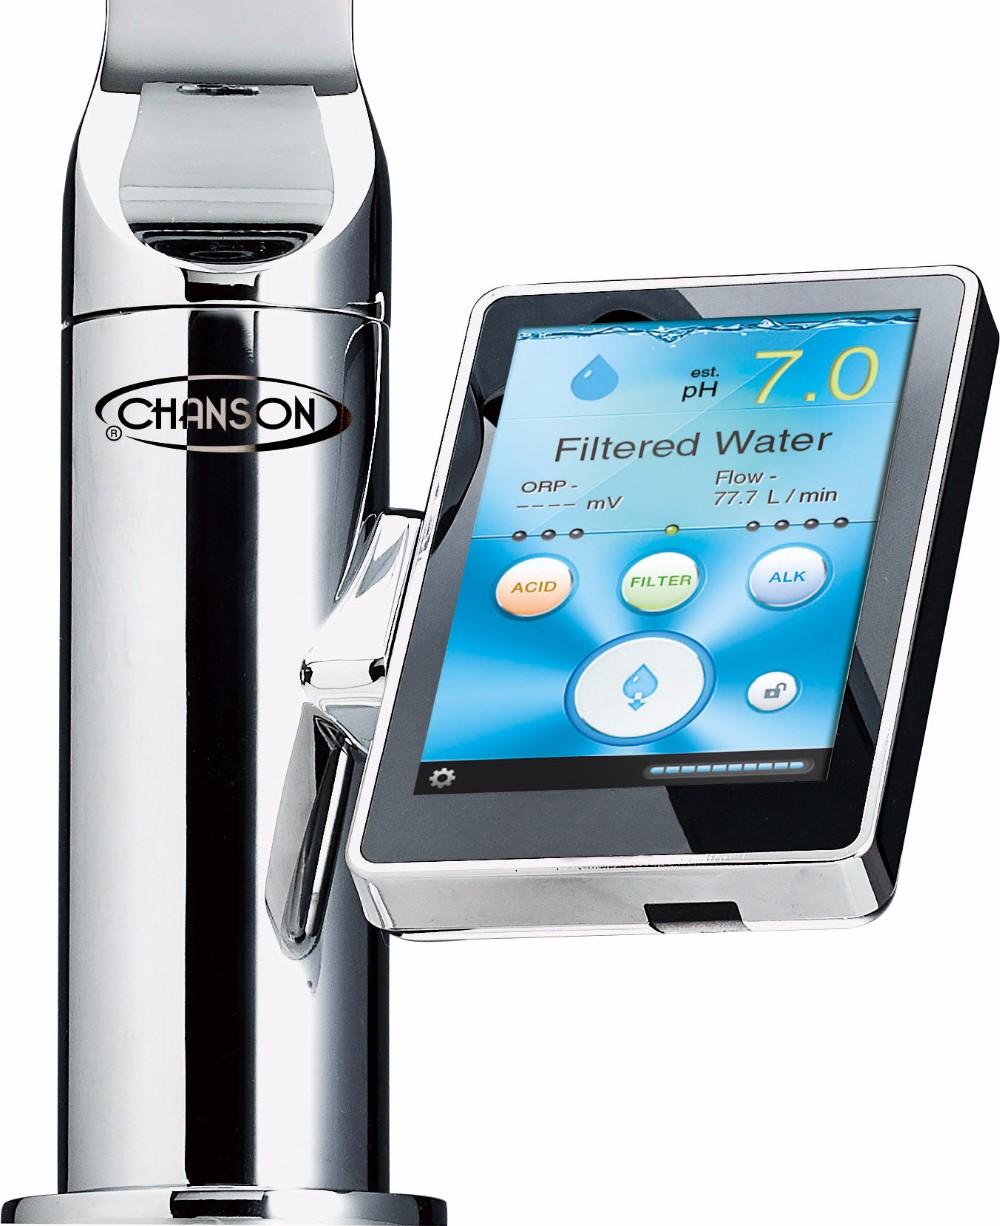 enagic kangen water machine for sale